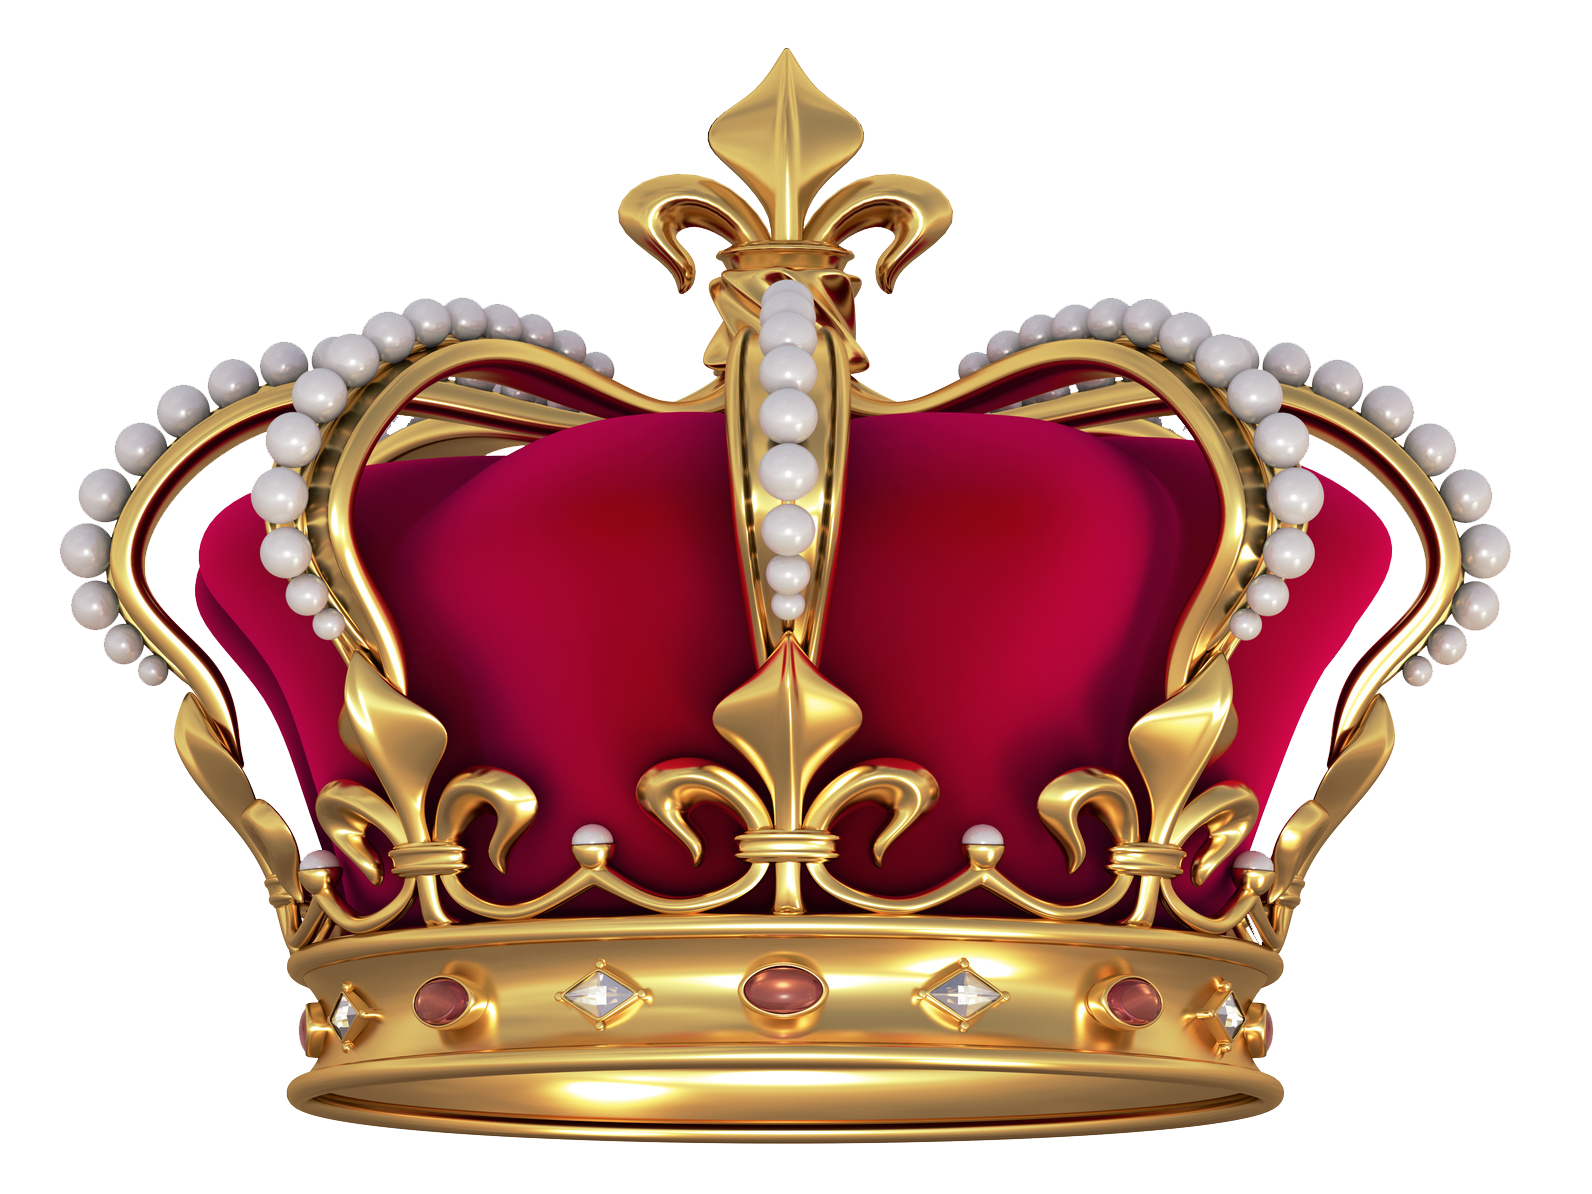 Homecoming crown clipart black and white library Изображение для Royal Queen Crown обои для Android # k7gvh | Декупаж ... black and white library